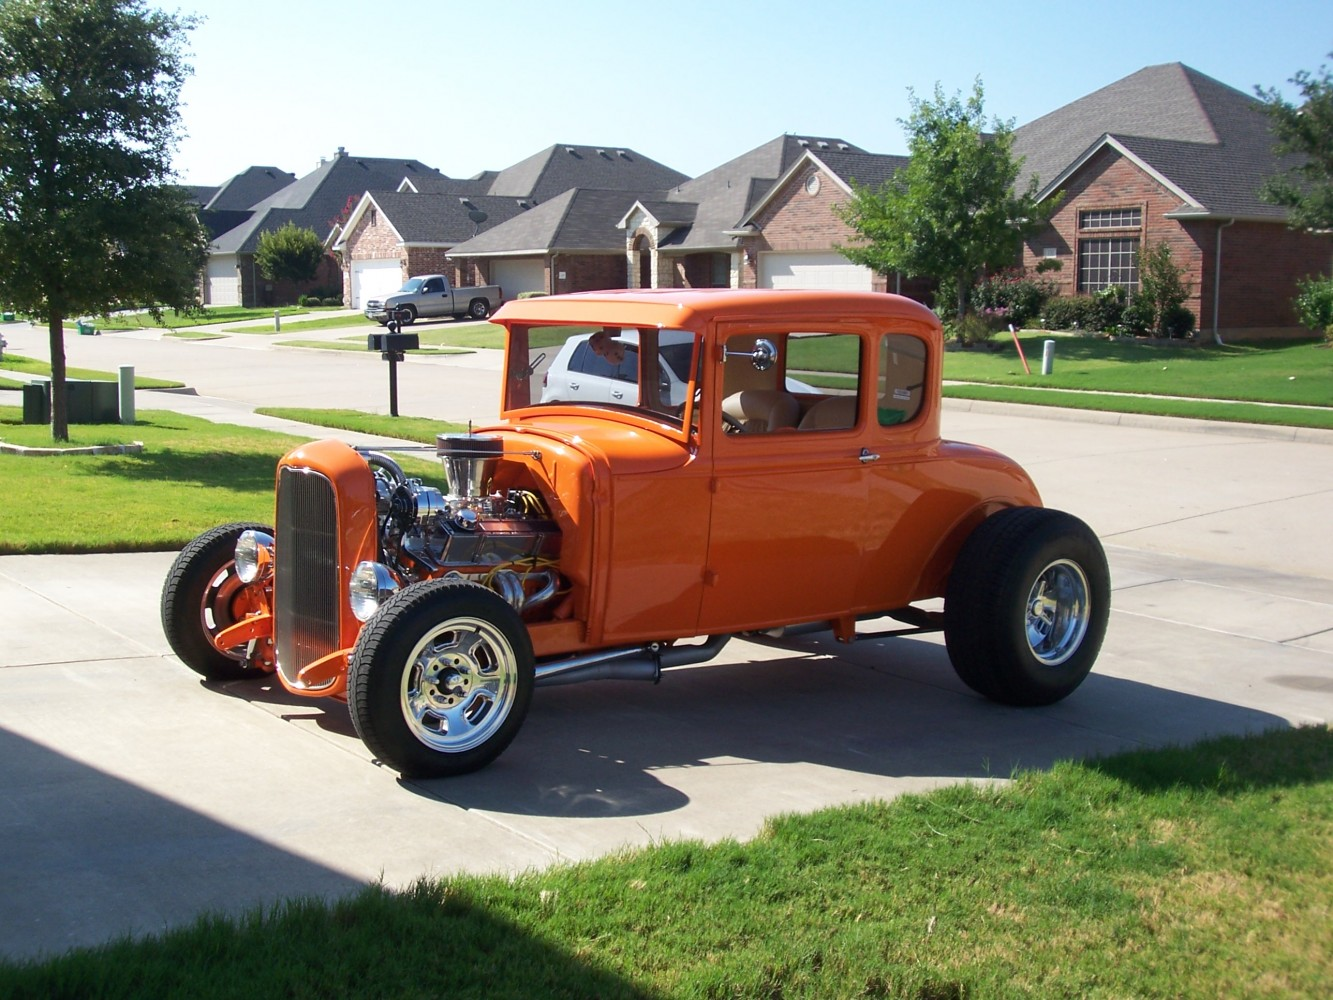 Hot Rods for sale and street rods for sale